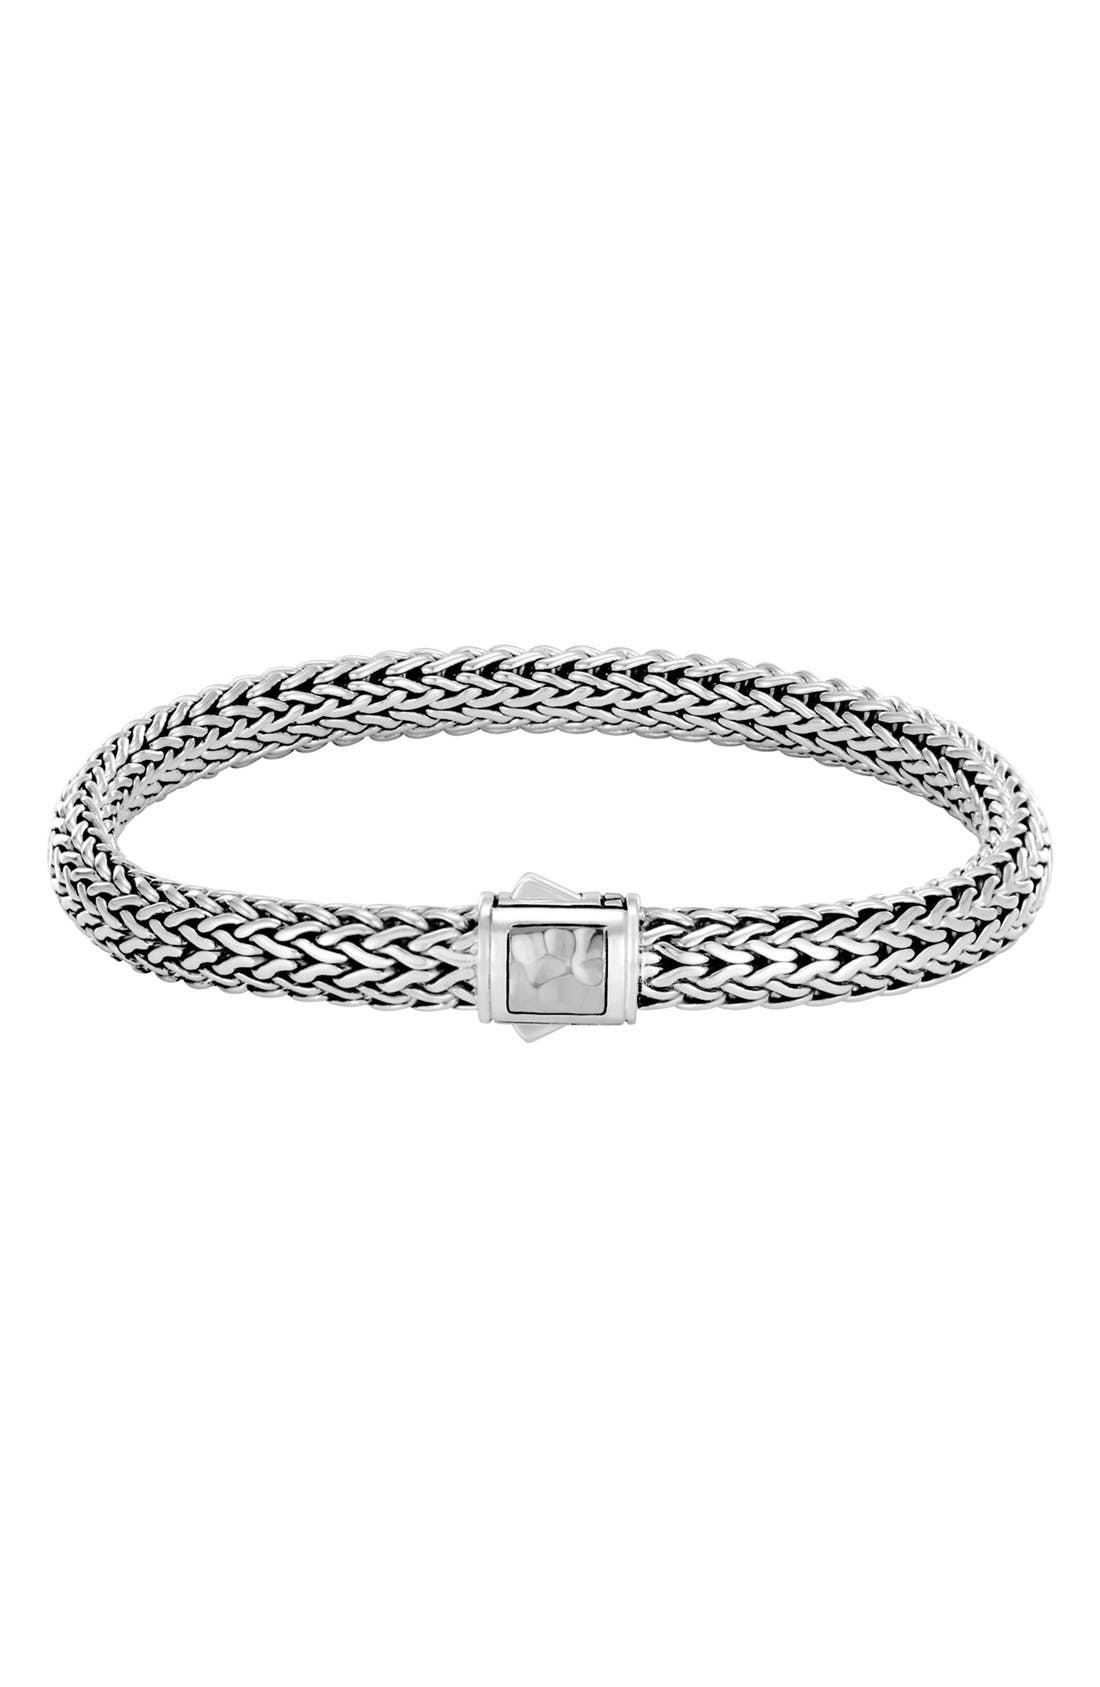 6.5mm Hammered Clasp Bracelet,                             Main thumbnail 1, color,                             SILVER